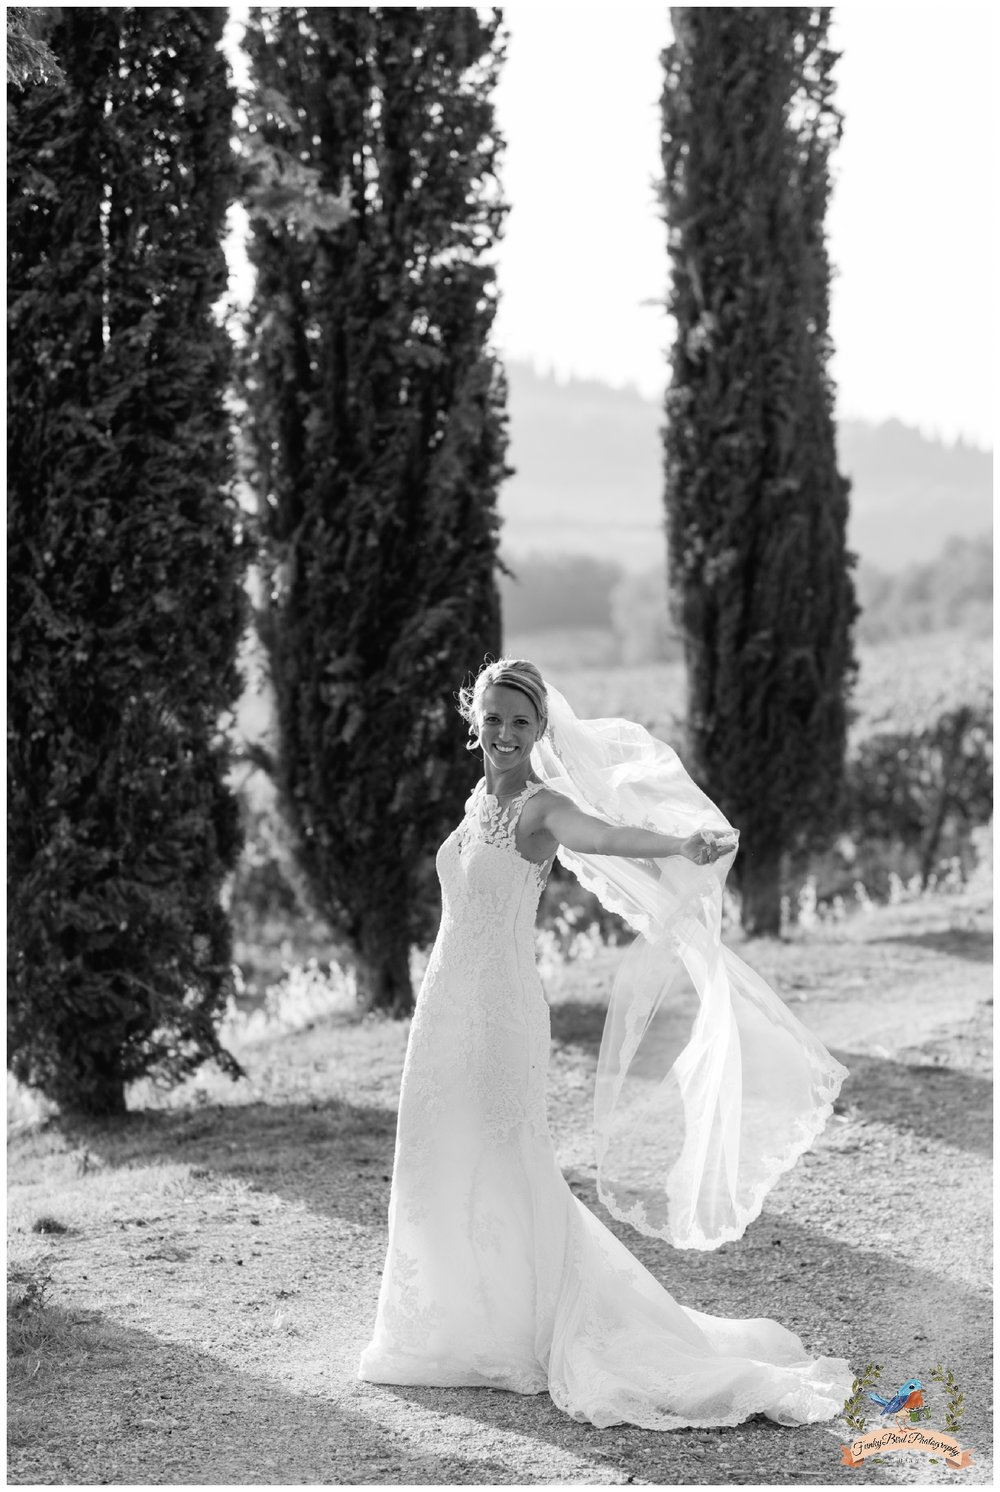 Wedding Photographer in Tuscany, Wedding Photographer in Florence, Wedding Photographer Siena, Italian Wedding Photographer, Wedding in Tuscany, Wedding in Florence, Wedding in Italy, Destination Wedding Photographer, Wedding Planner Tuscany, Wedding Venue Tuscany